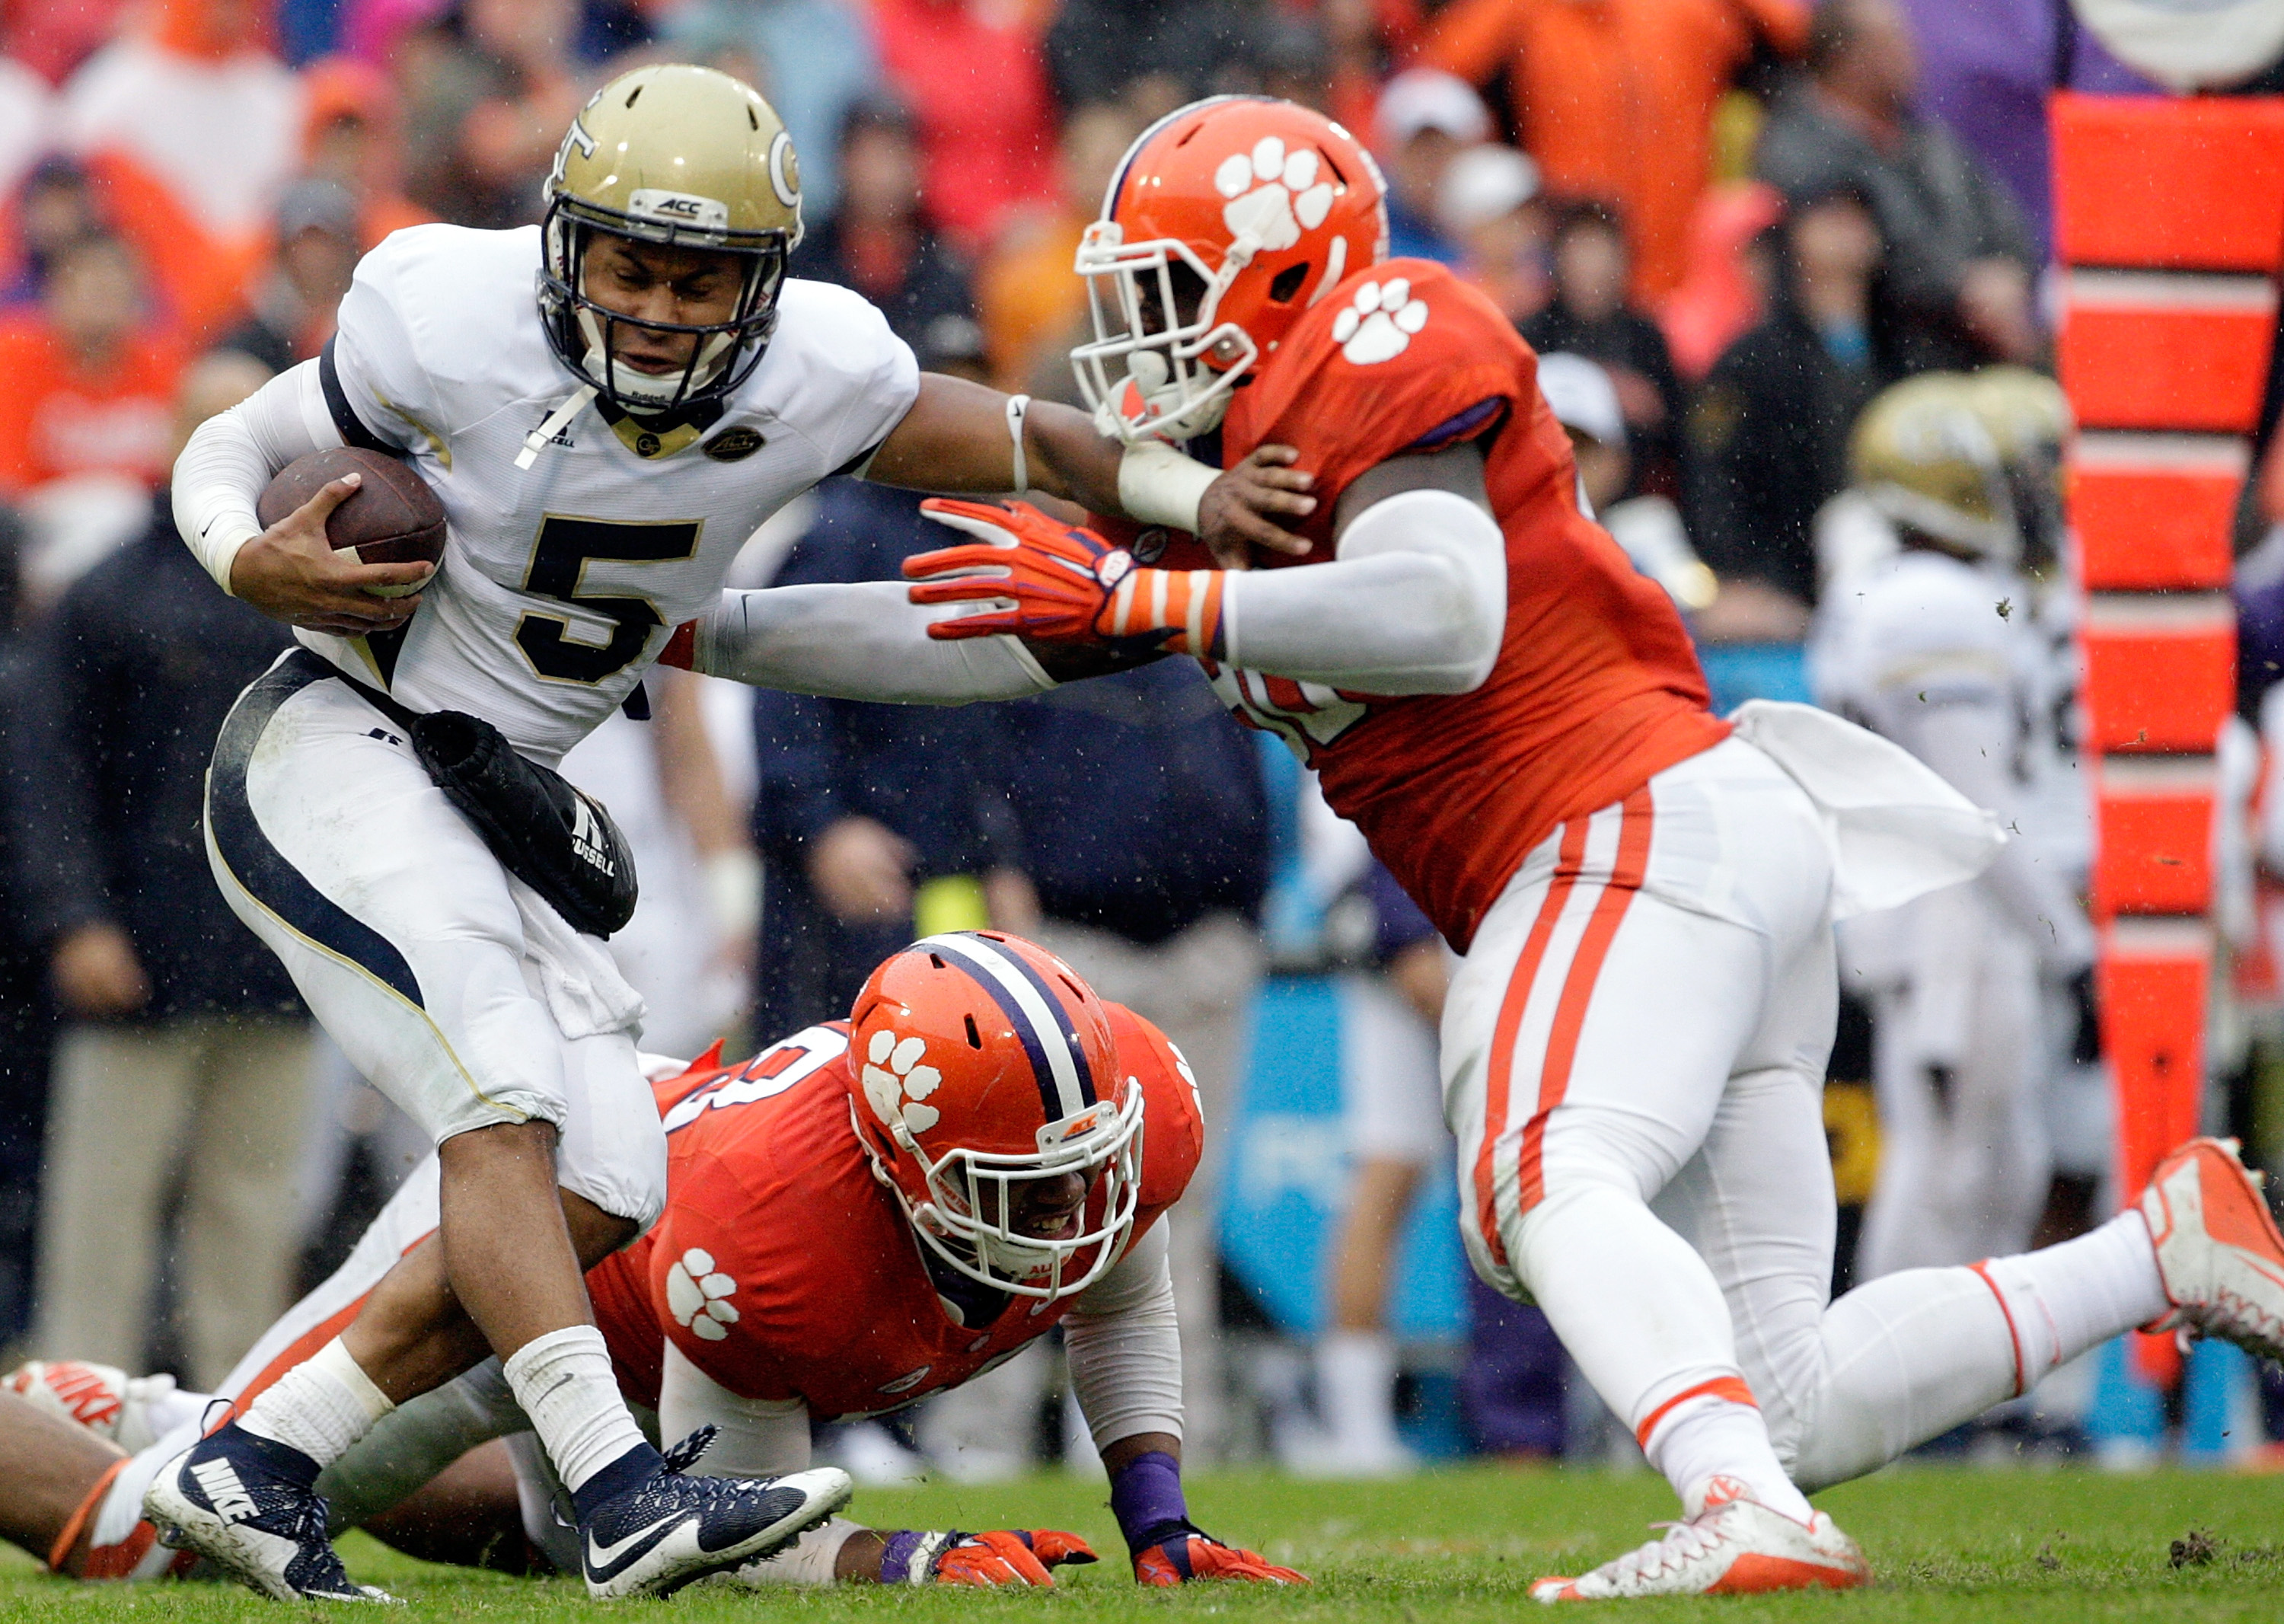 Shaq Lawson was dominant for Clemson. (Getty Images)